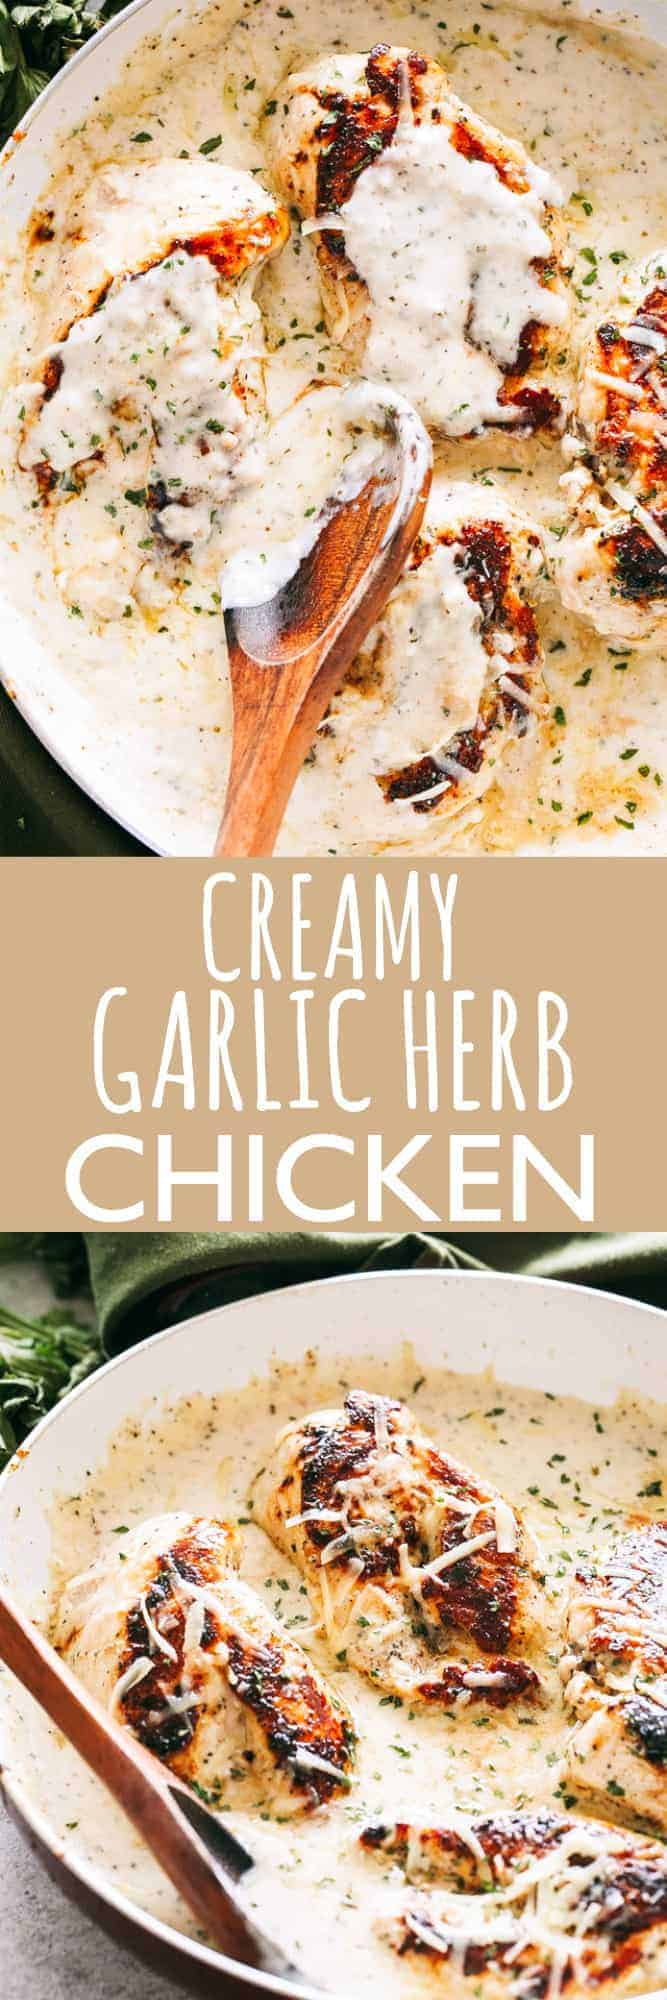 Pan-seared chicken breasts prepared with a creamy, garlicky herb sauce. Flavorful, quick weeknight dinner prepared in one pan and in 30 minutes! #chicken #chickendinner #chickenbreasts